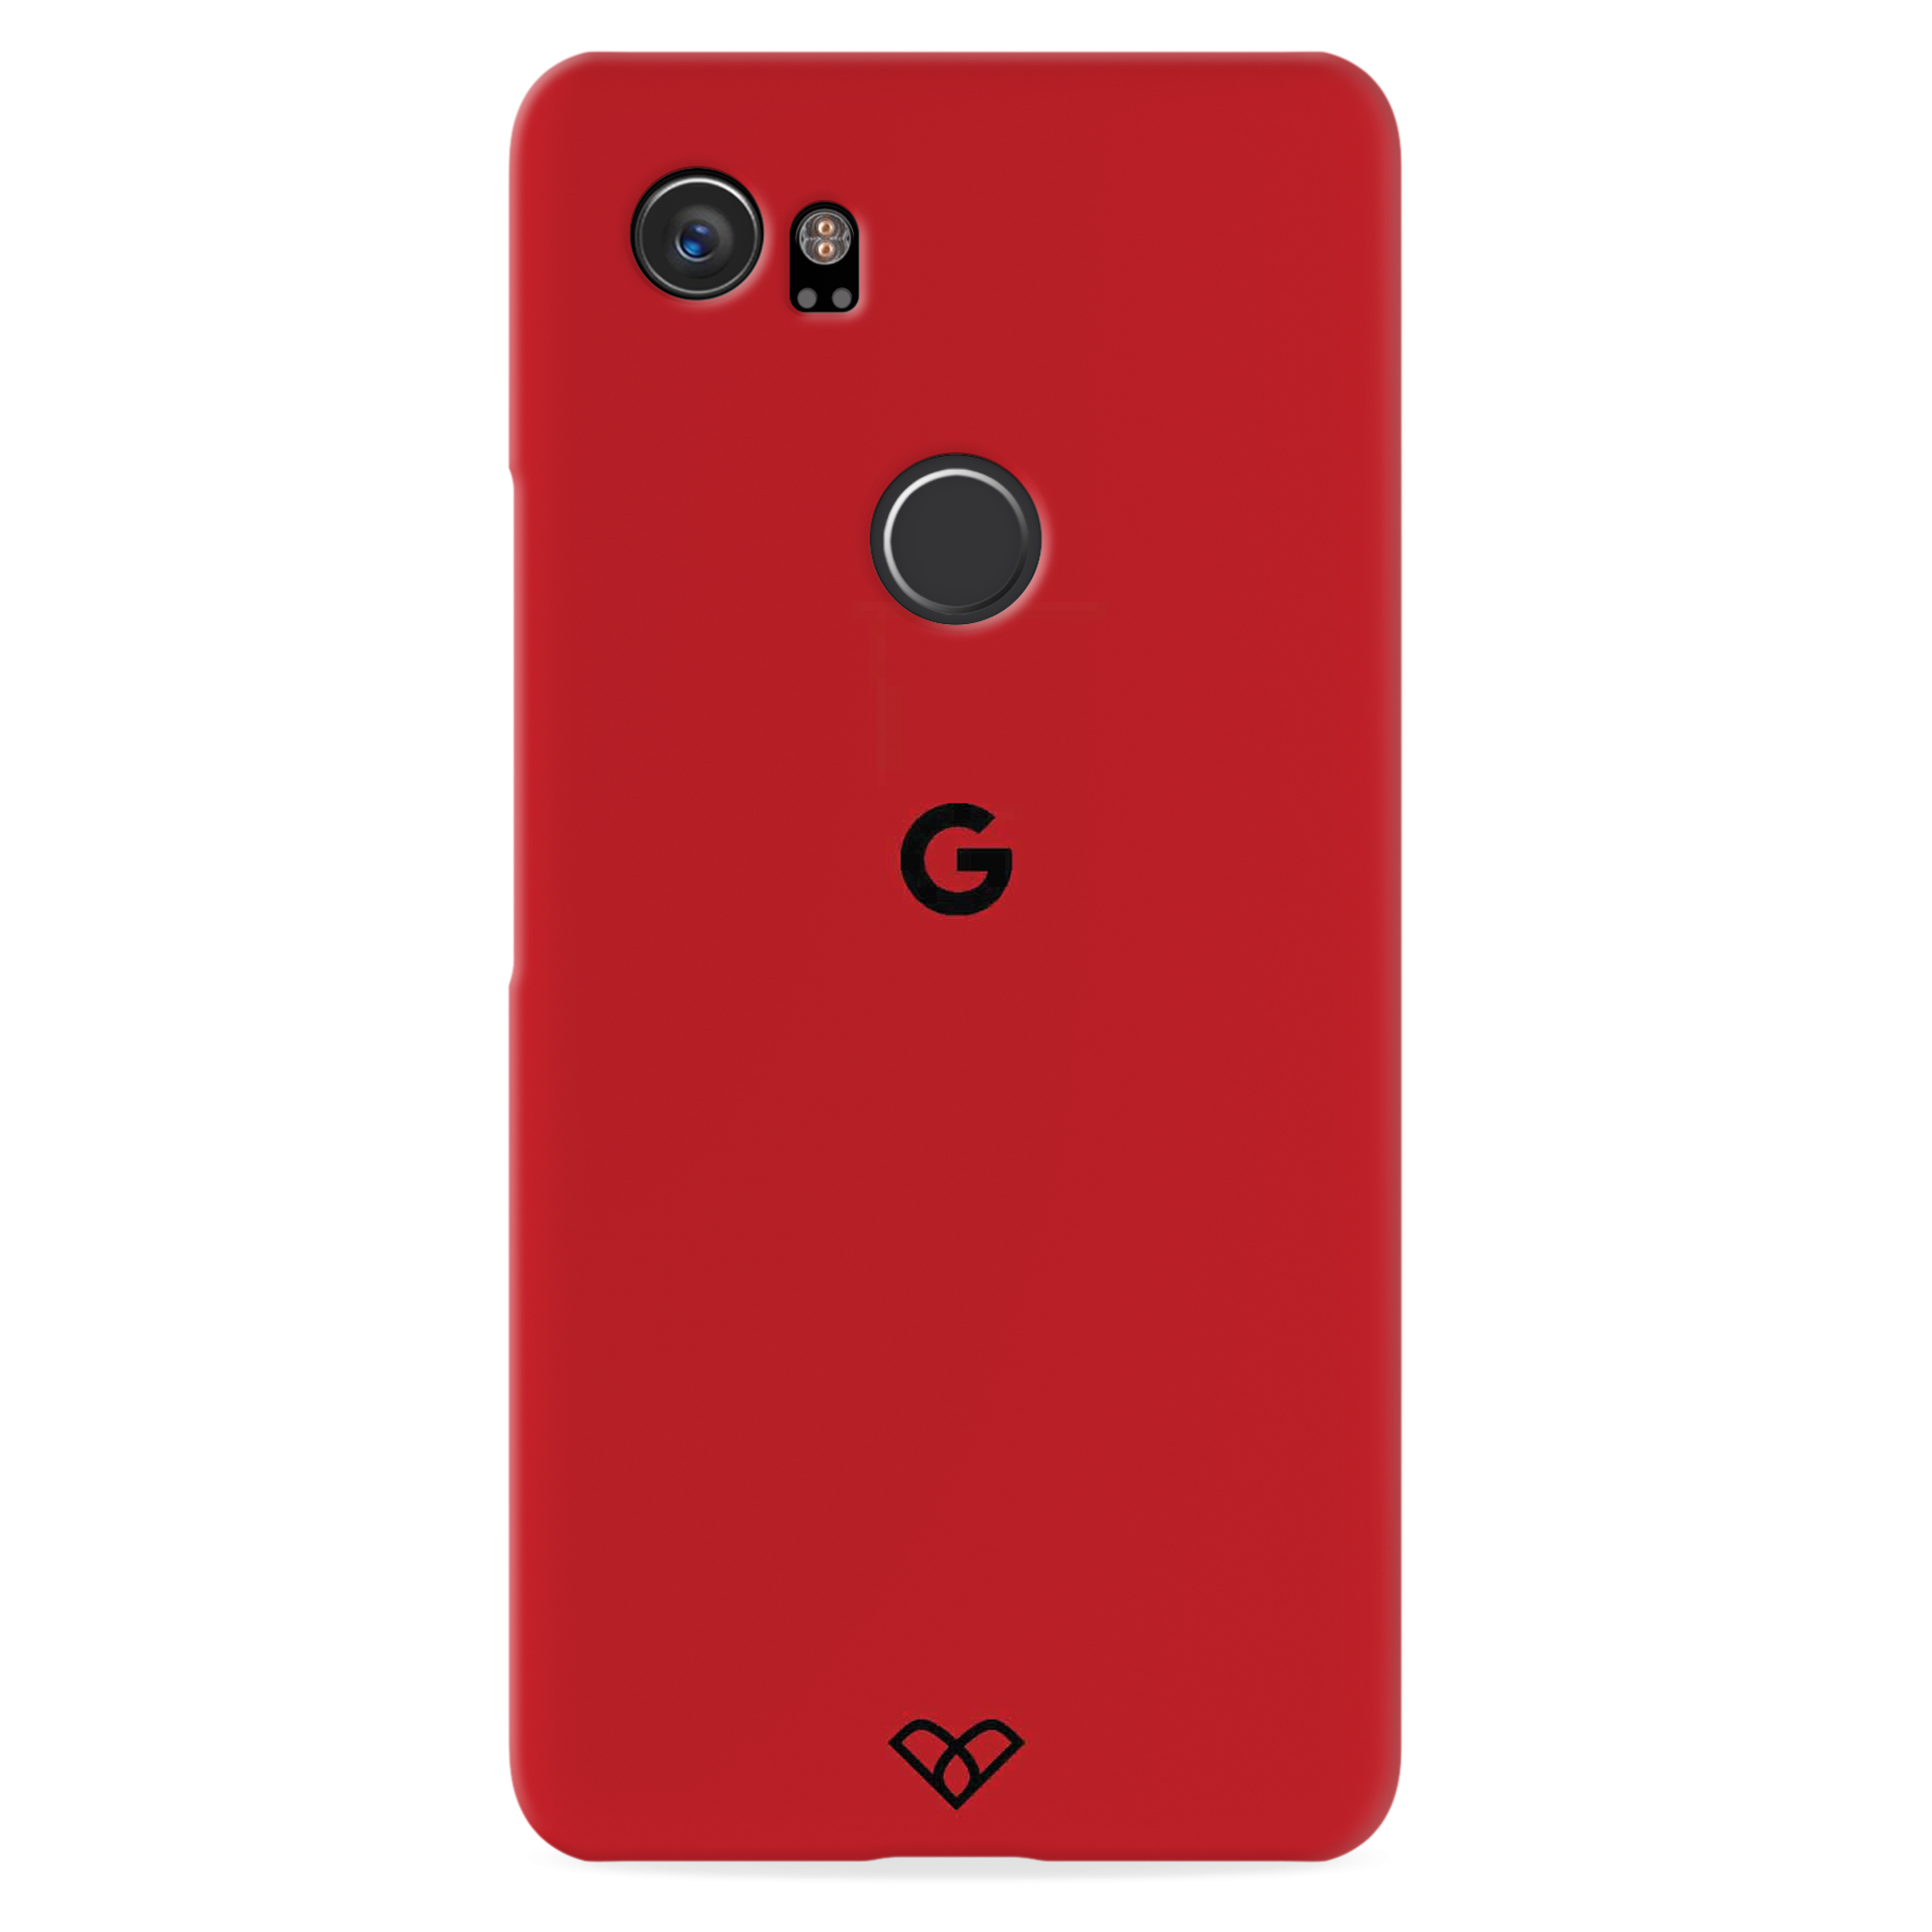 Red Slim Case And Cover For Pixel 2 XL